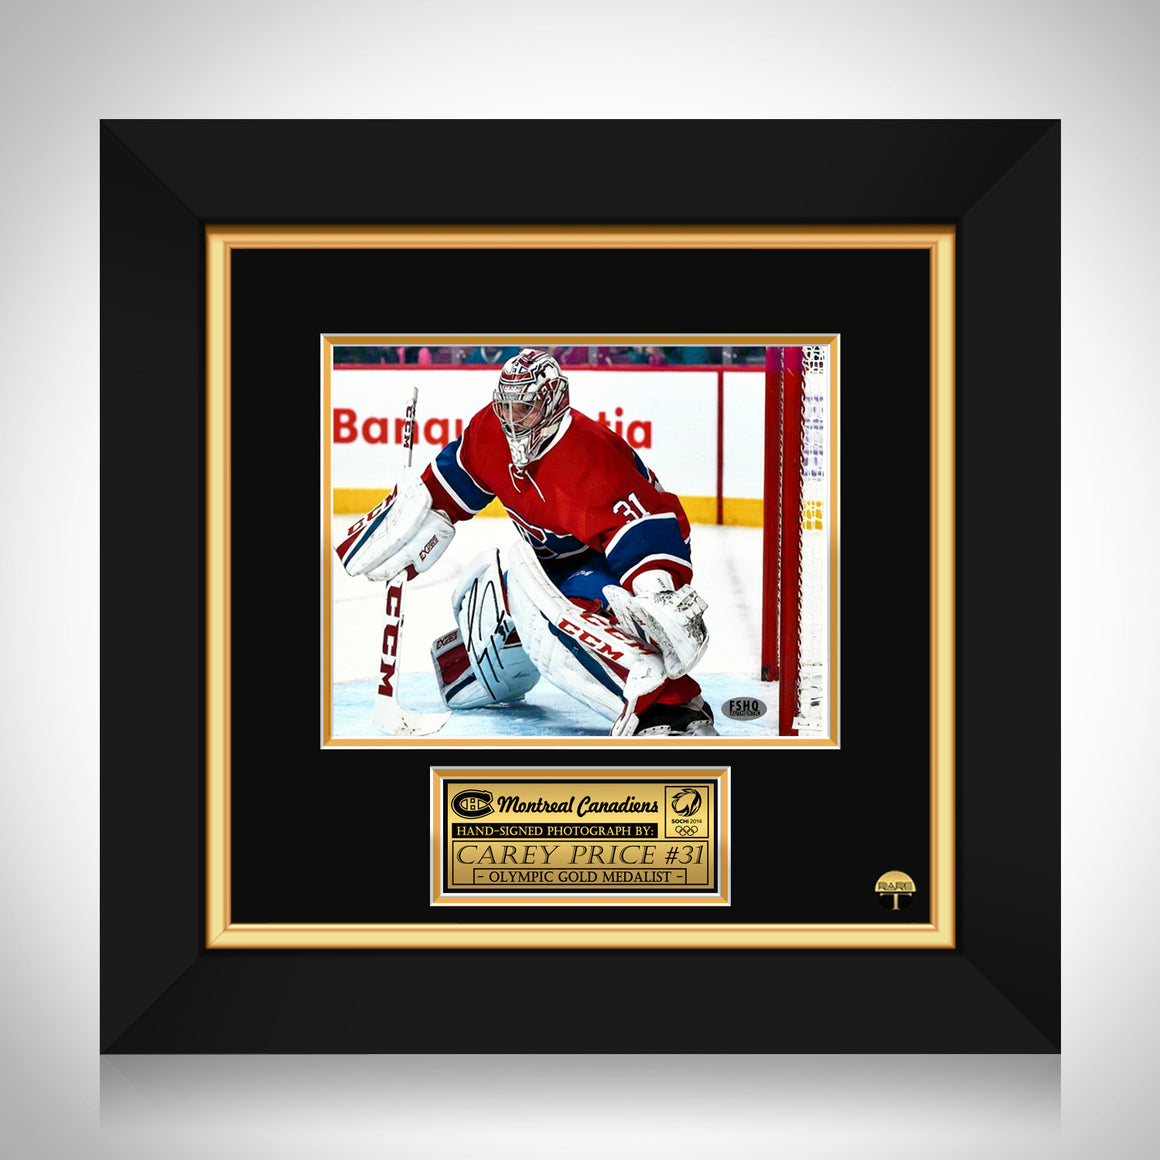 Carey Price- Hand-Signed Montreal Canadians Photo by Carey Price